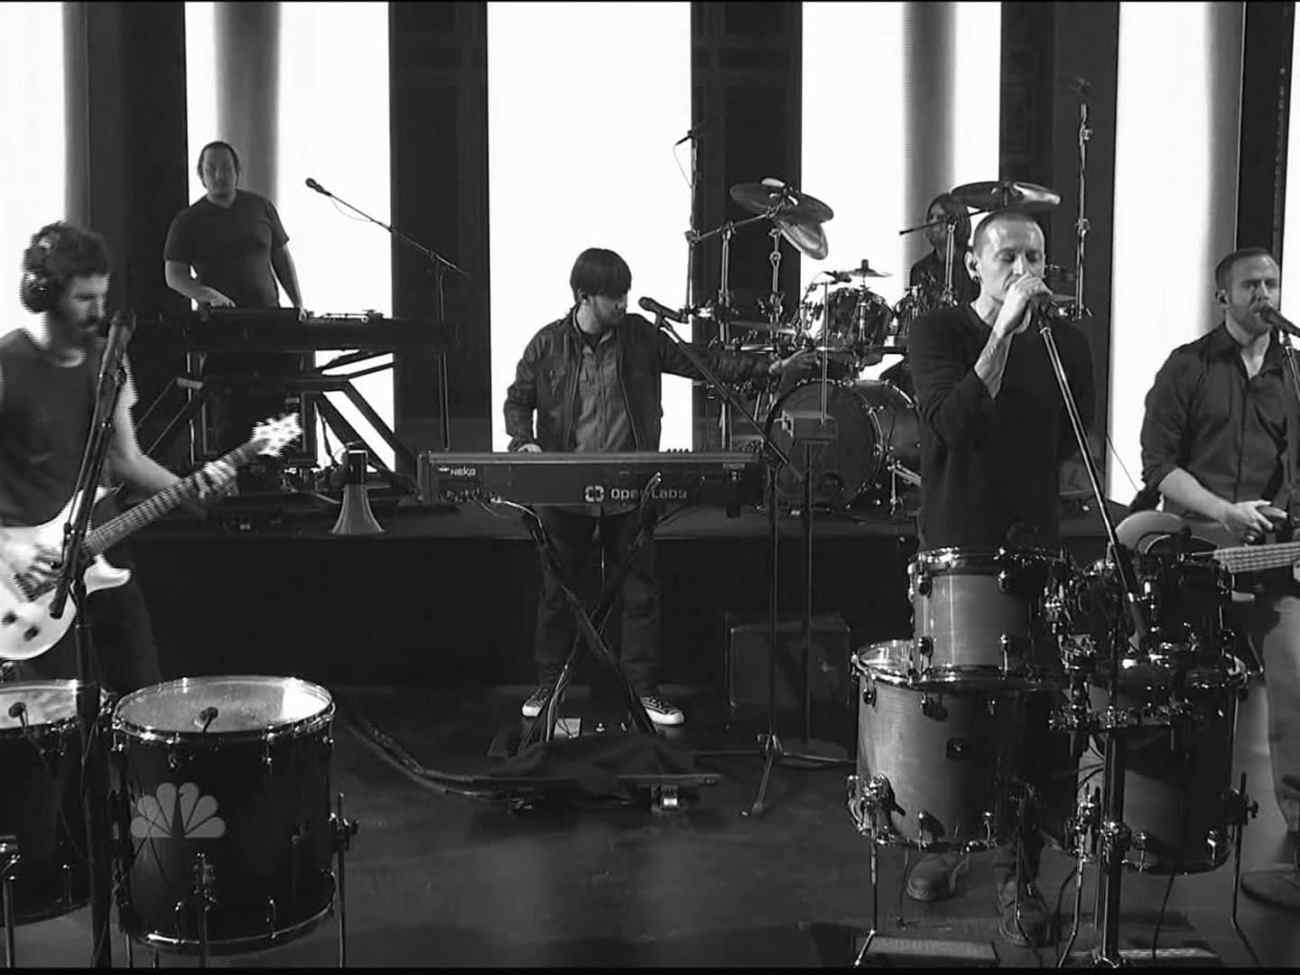 Linkin Park performing live